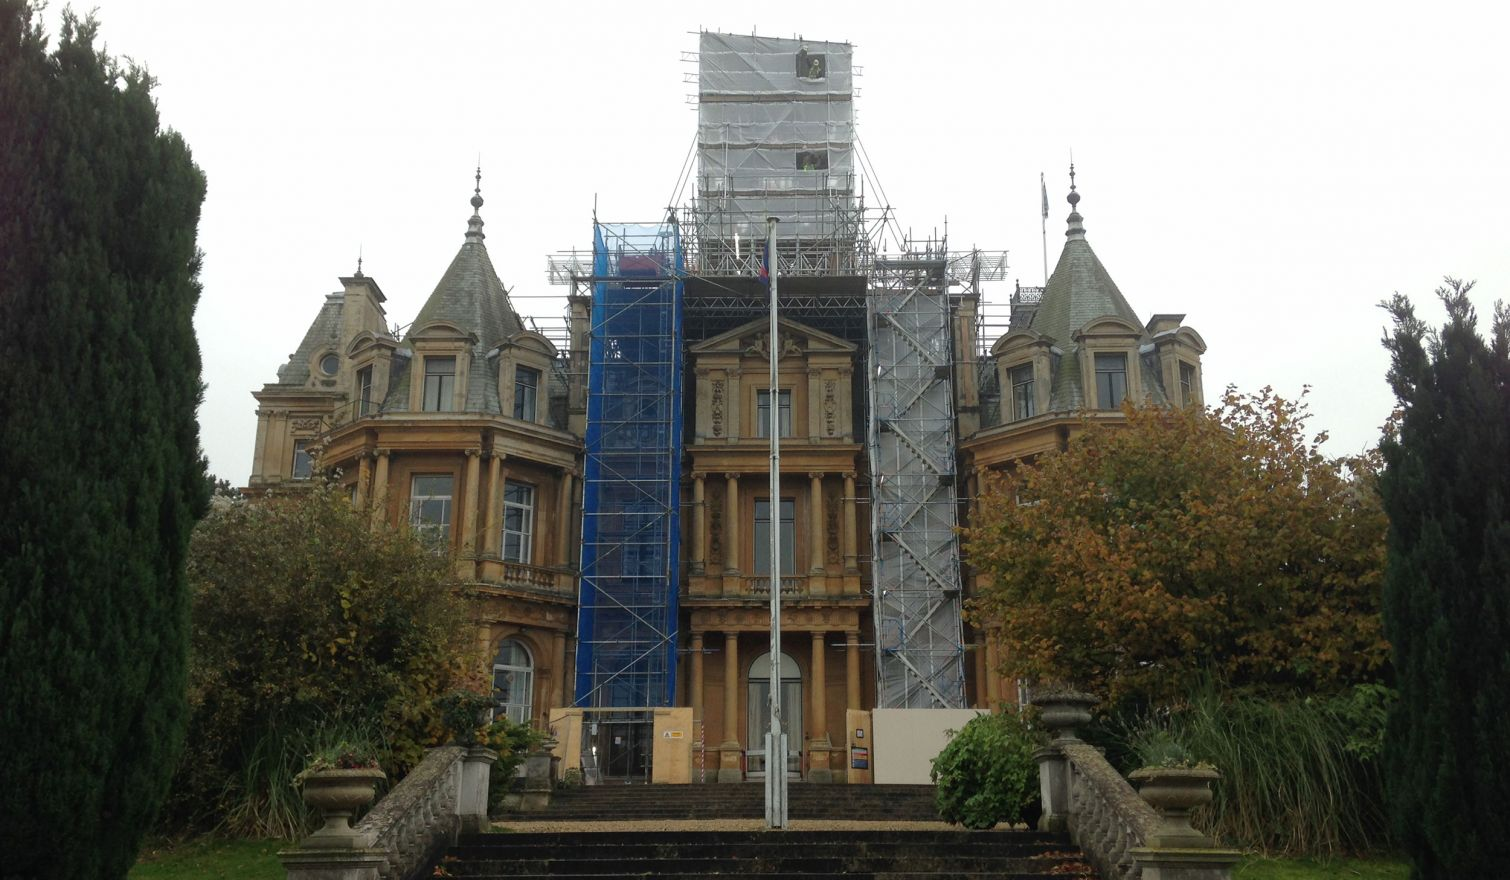 RAF Halton House - Bridged Access Scaffold for the Removal of The Belvedere (Turret)